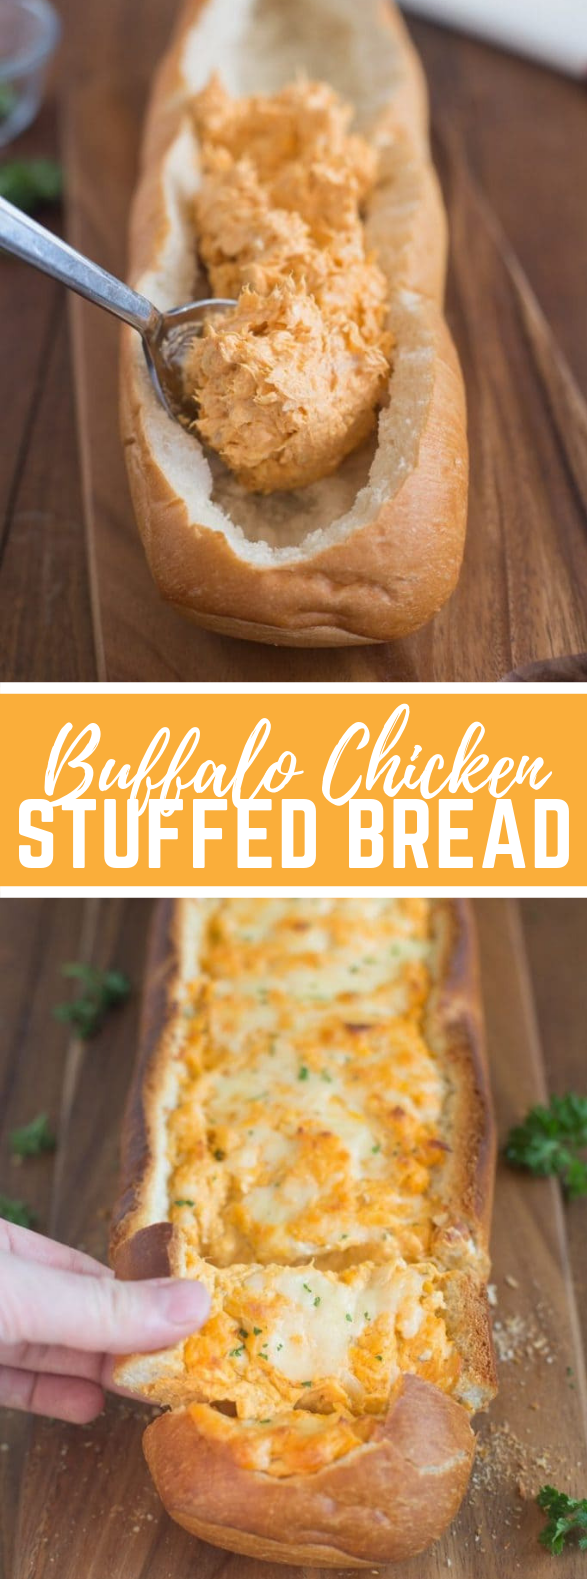 Buffalo Chicken Stuffed Bread #appetizers #gameday